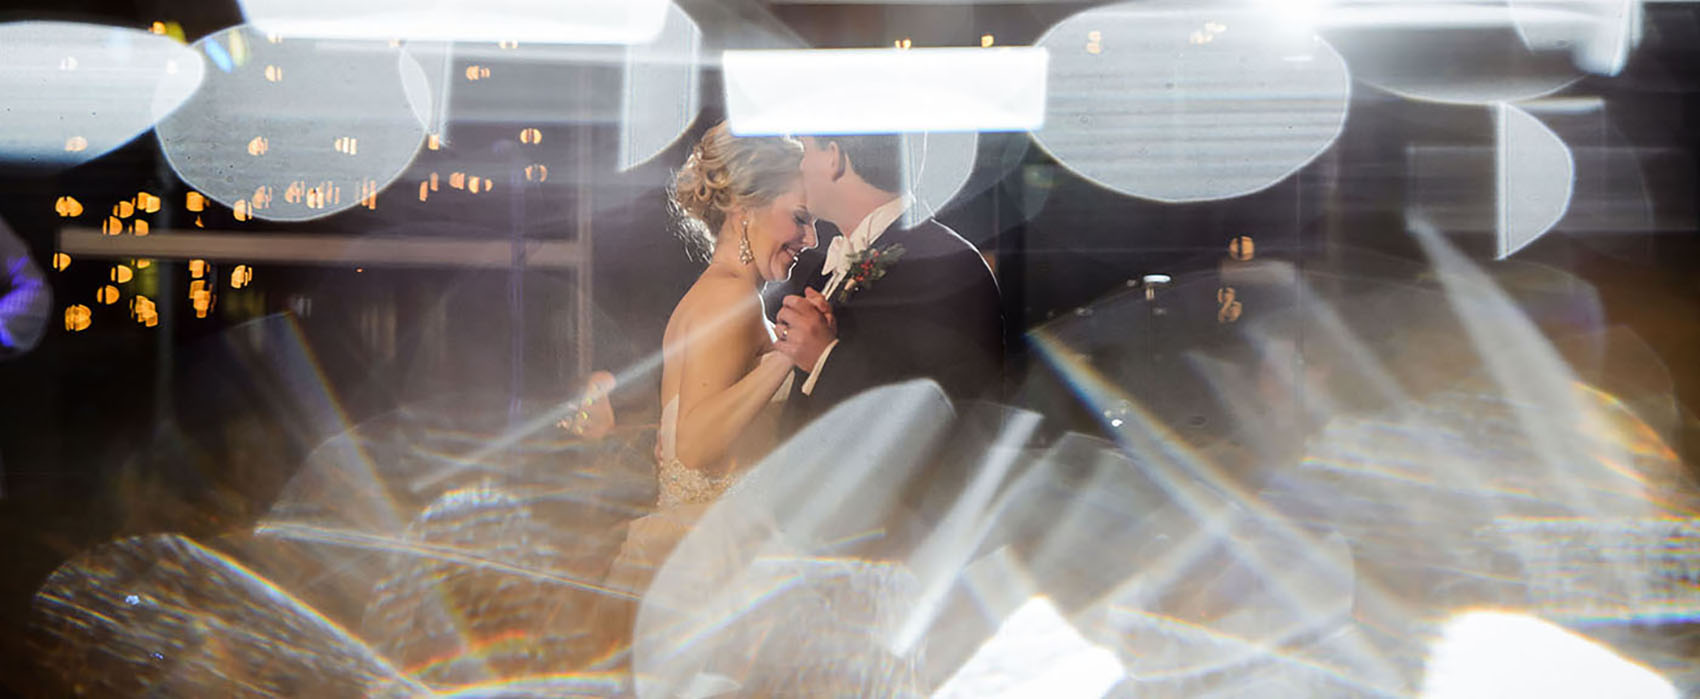 The first dance of Sarah and Bryce at the Certus Loft of the Huguenot Mill in Greenville, SC.